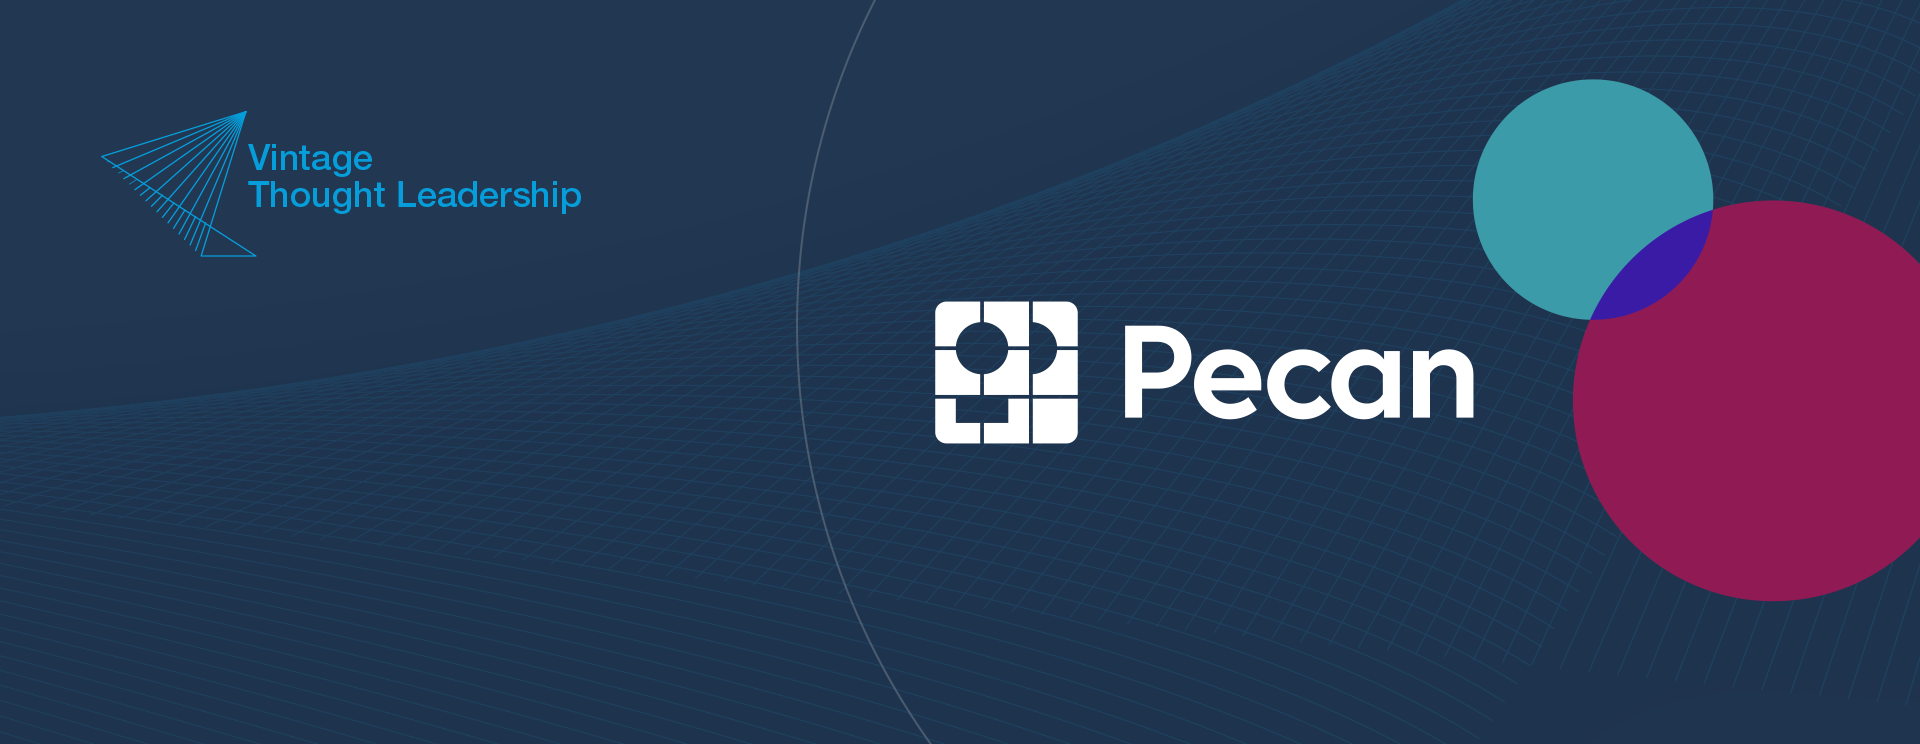 Why We Invested in Pecan